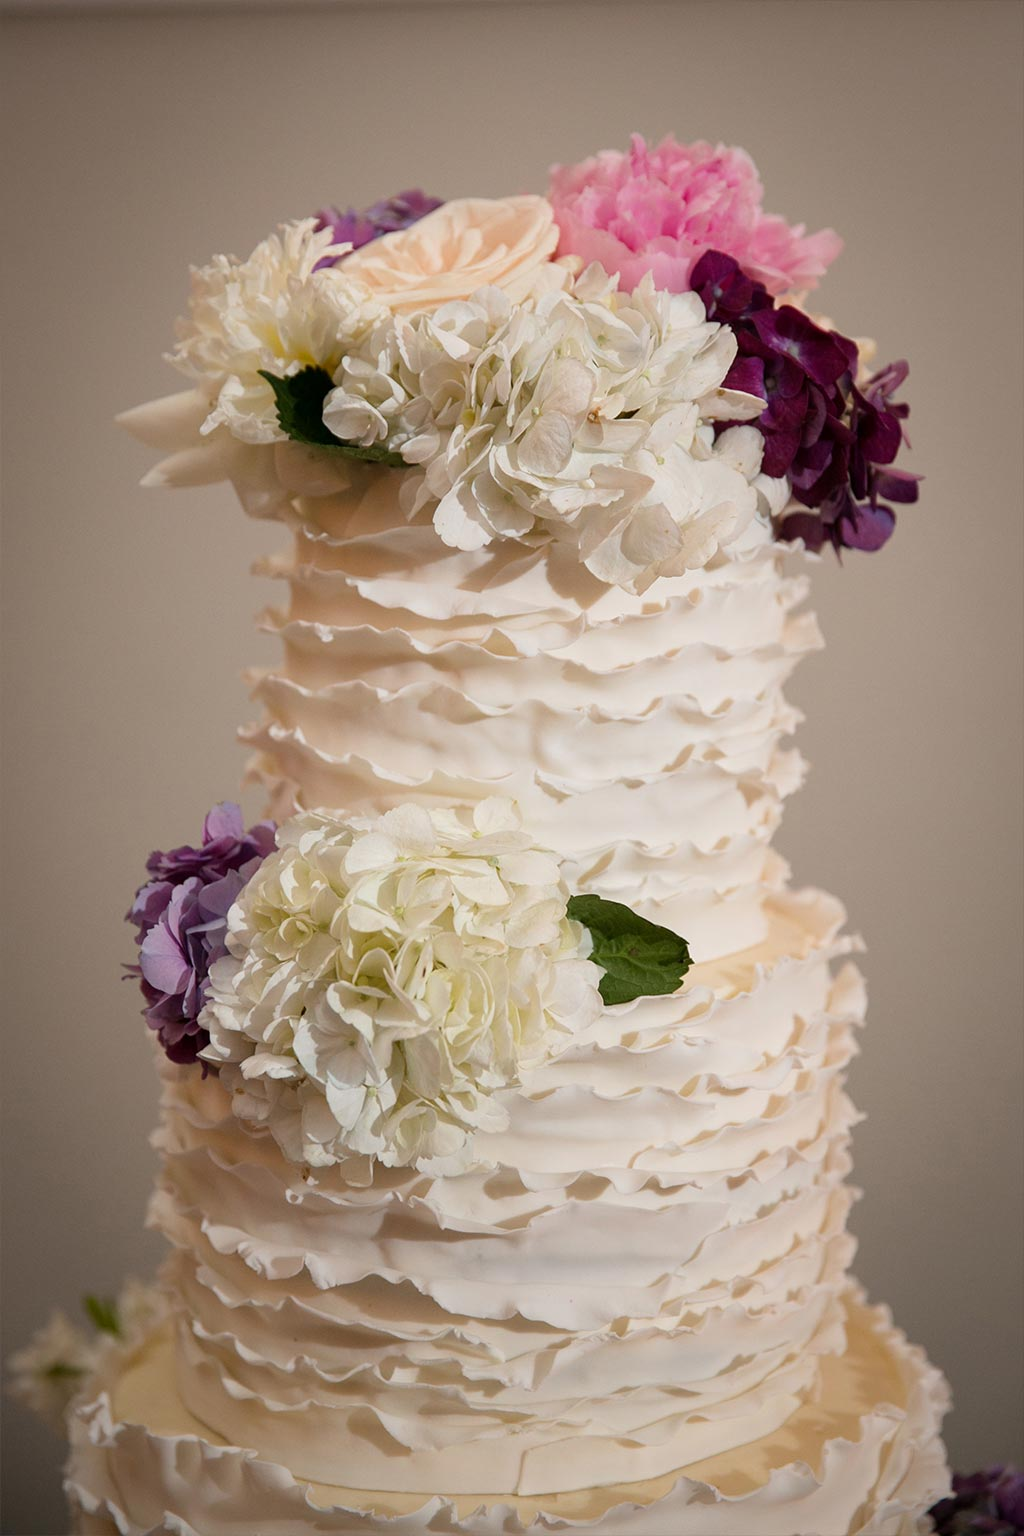 Ruffle Wedding Cake with Floral Topper